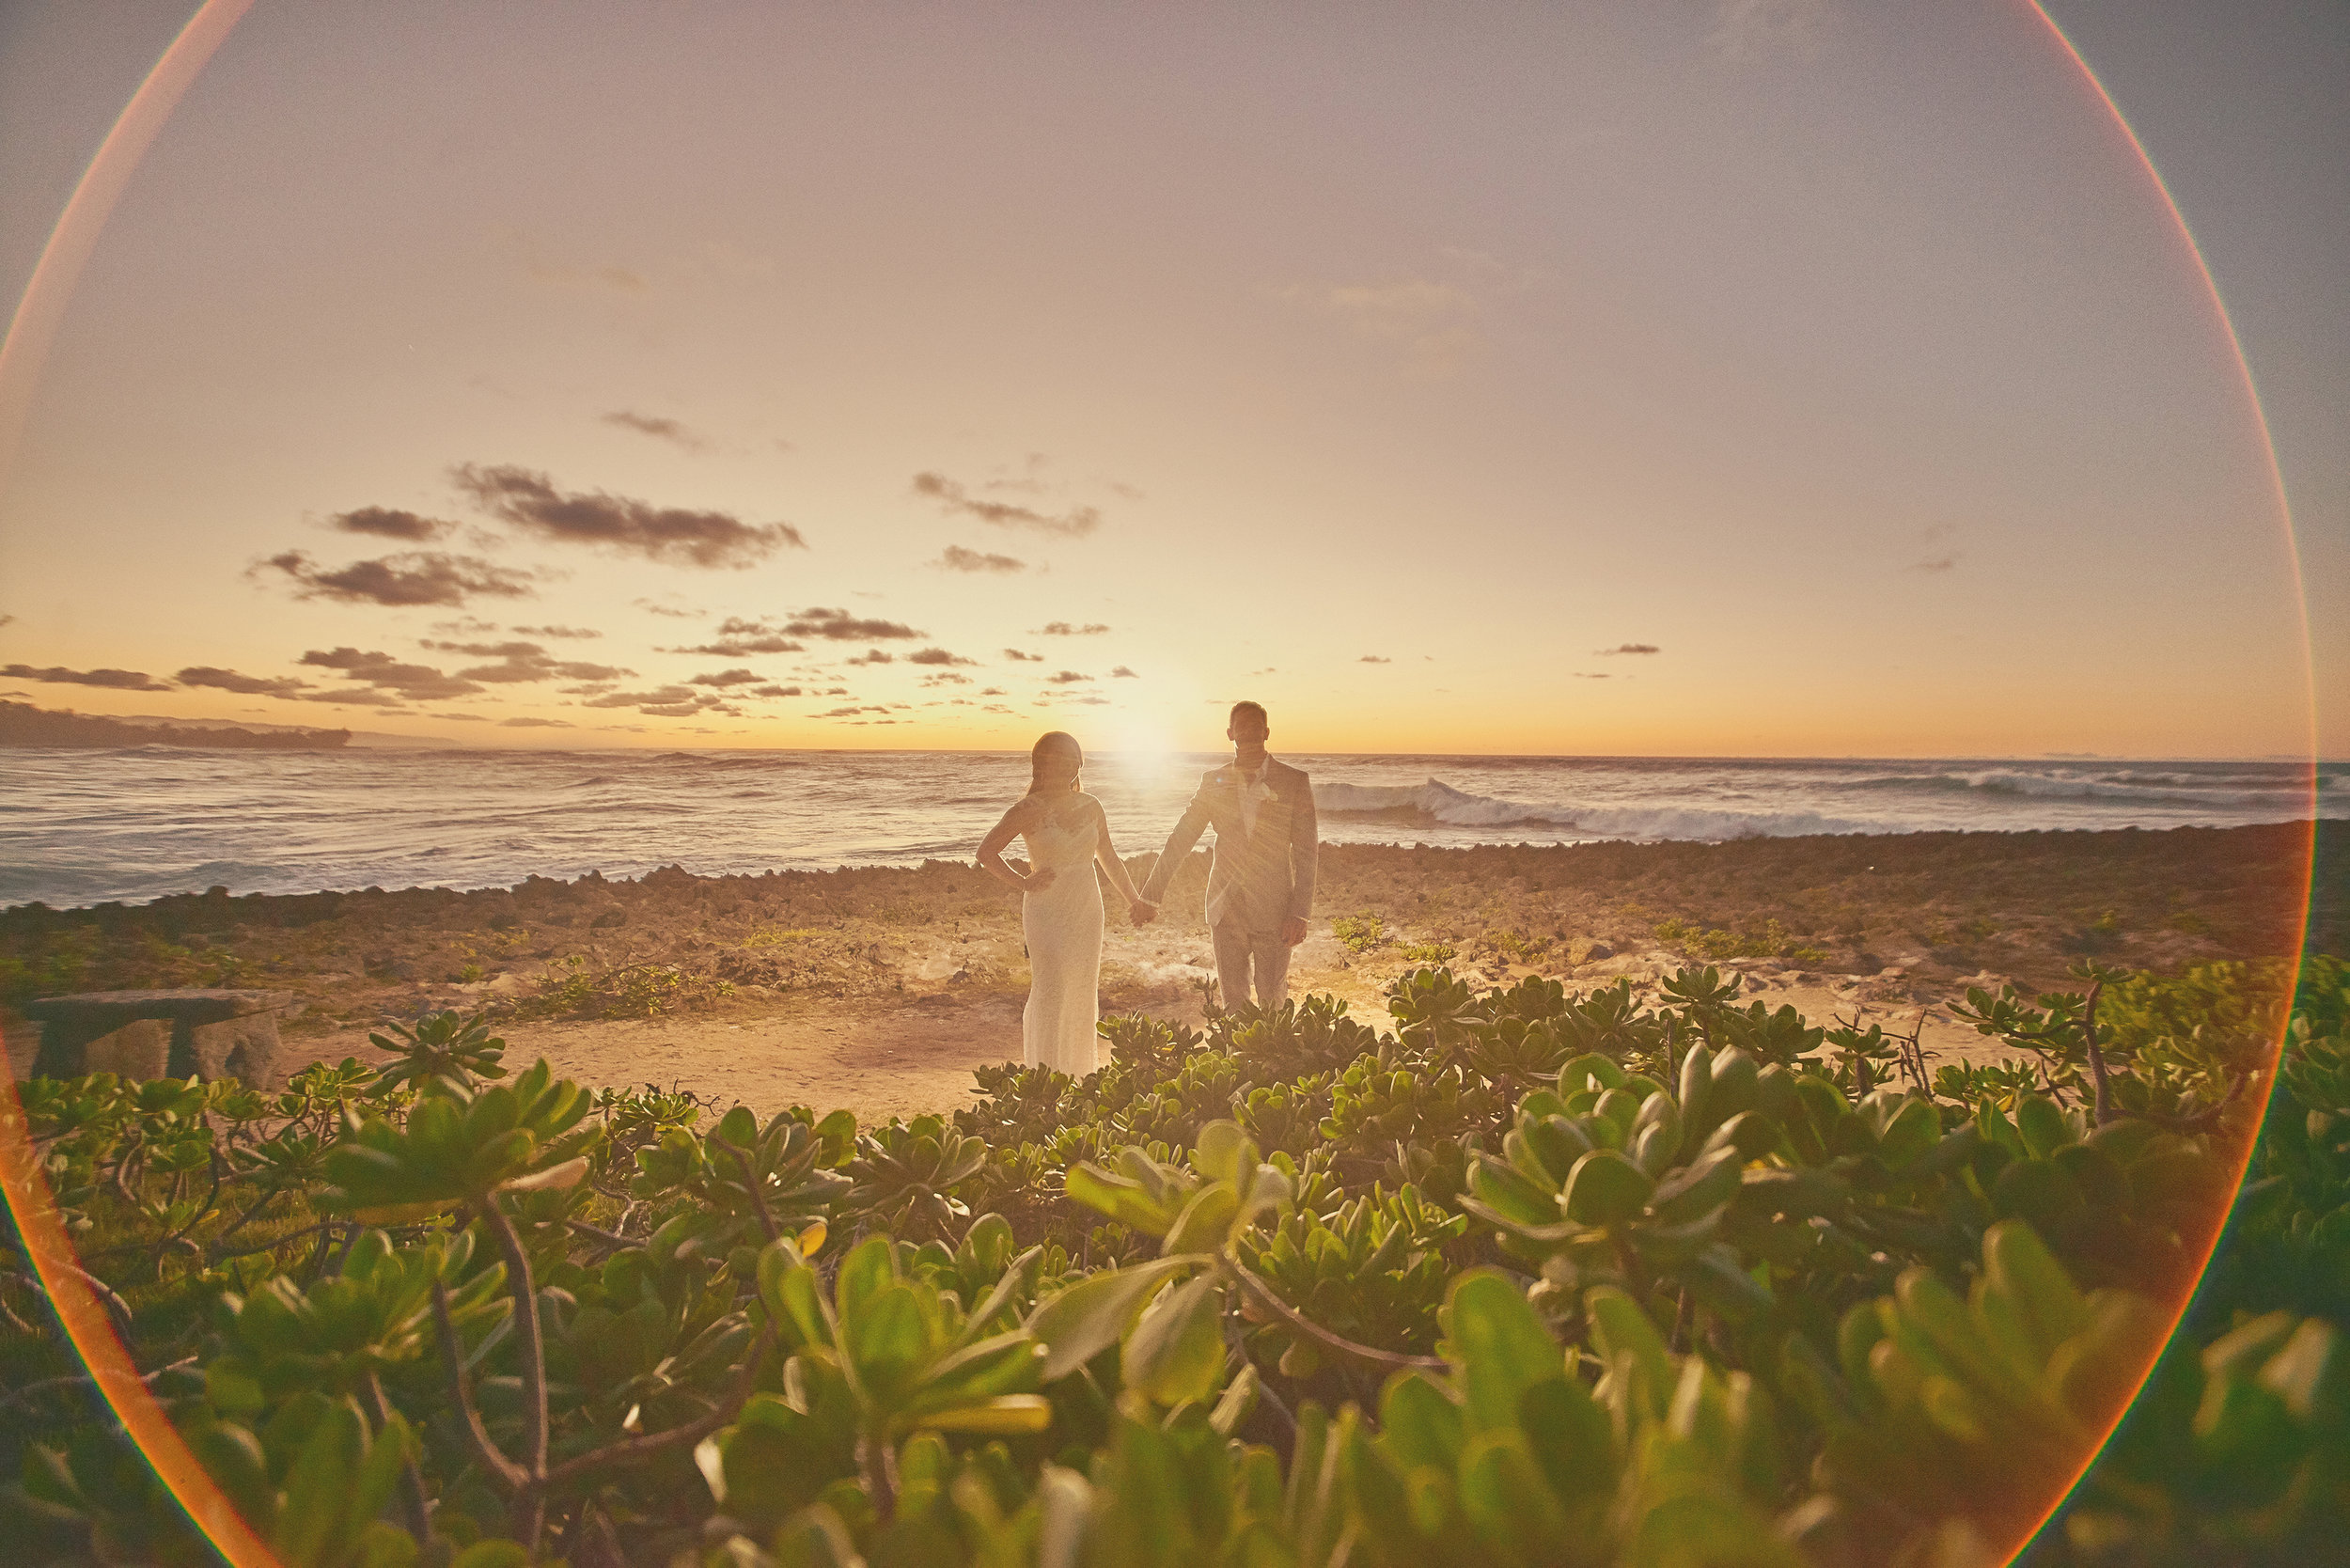 turtle bay resort wedding north shore oahu stephen ludwig photography- terry and isabel (6).jpg